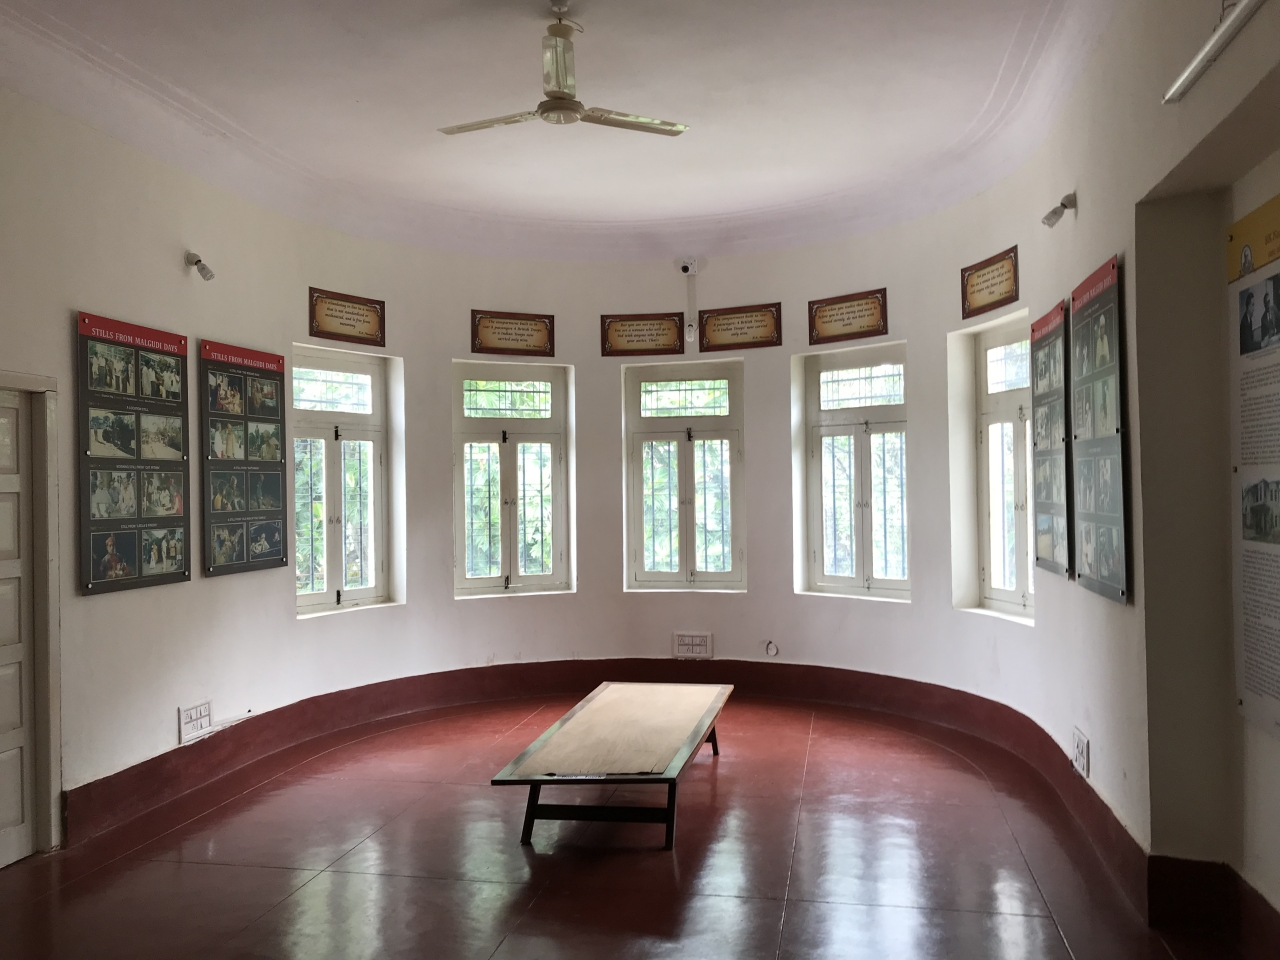 R K Narayan's writing room and writing table